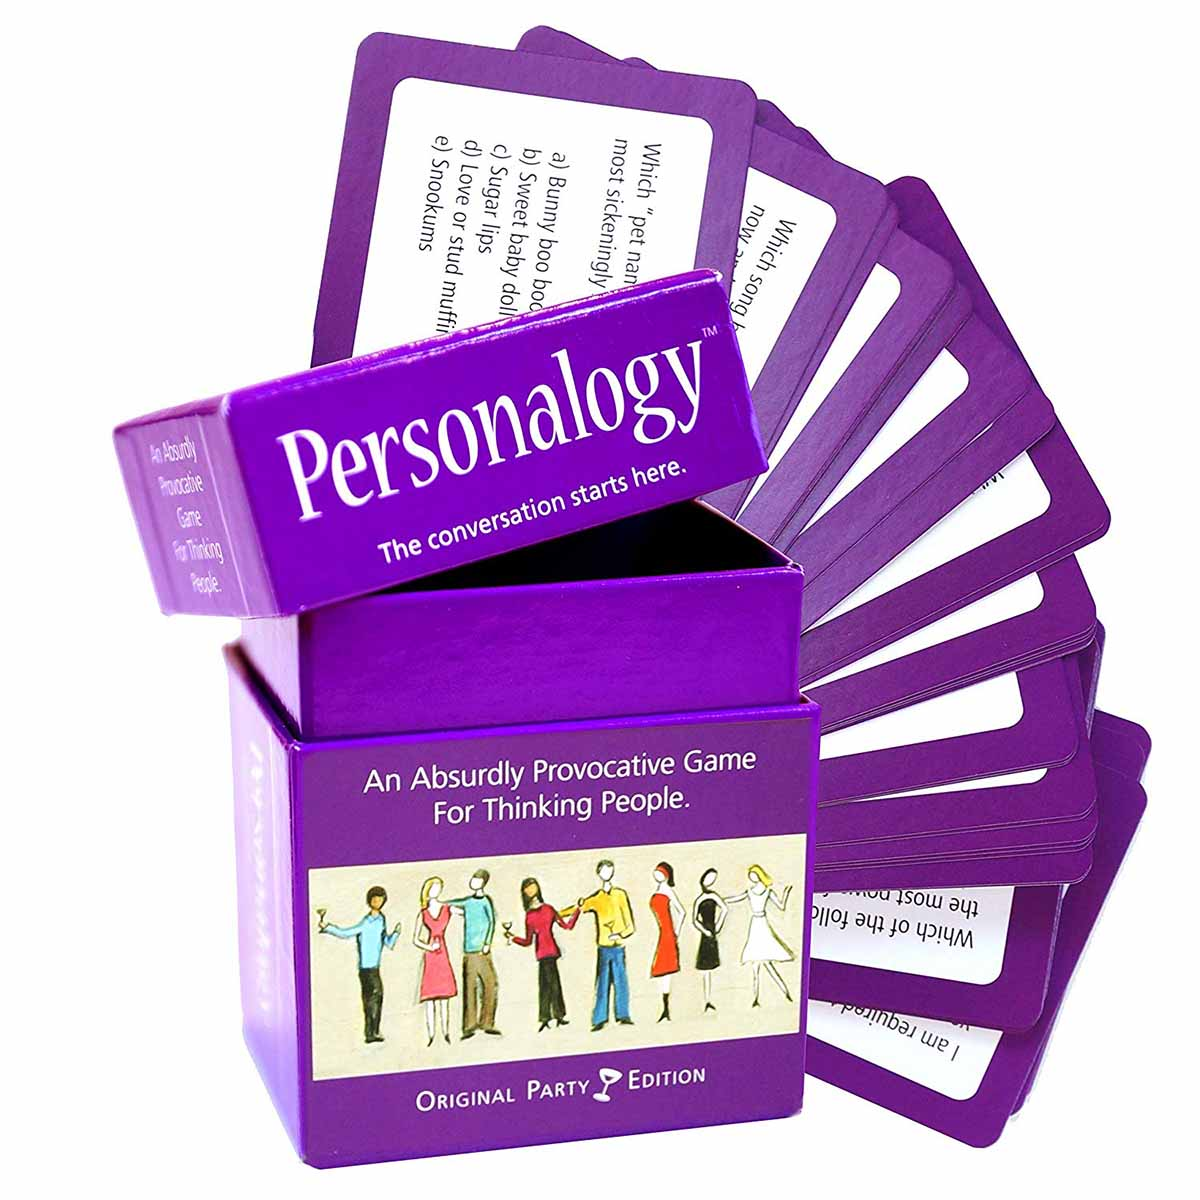 Personalogy Party